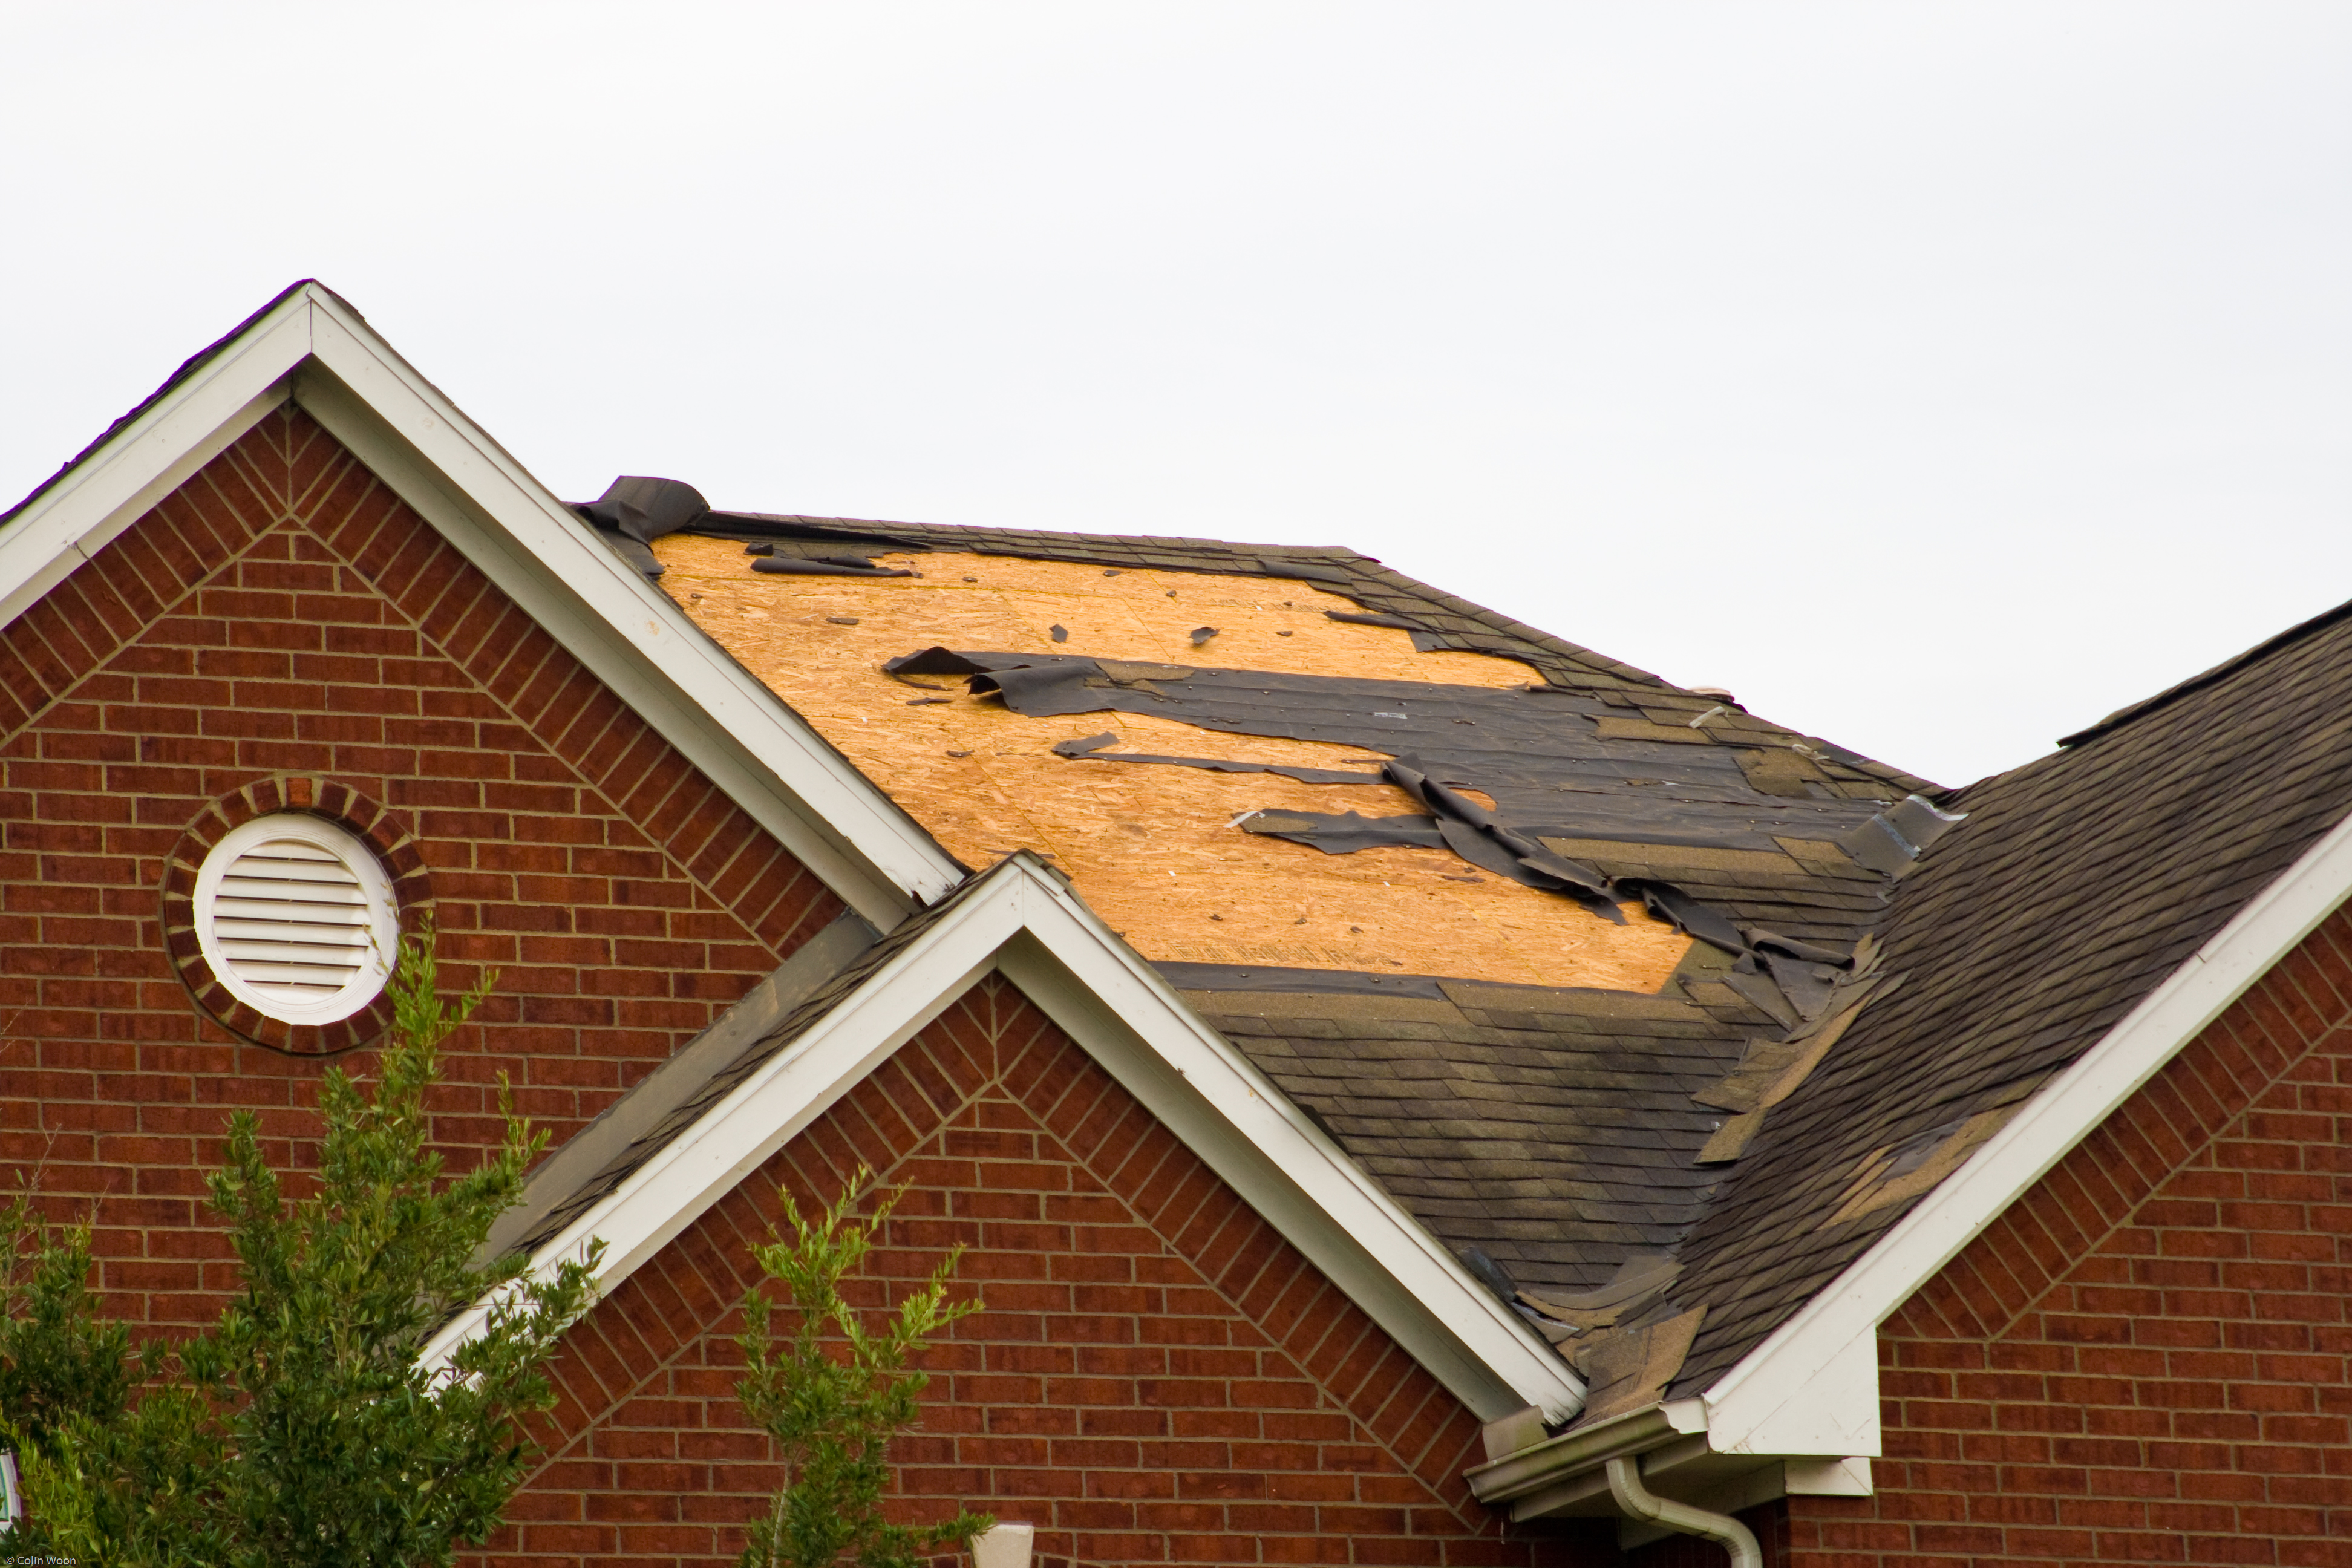 Quote for roofing replacement West Bloomfield Michigan